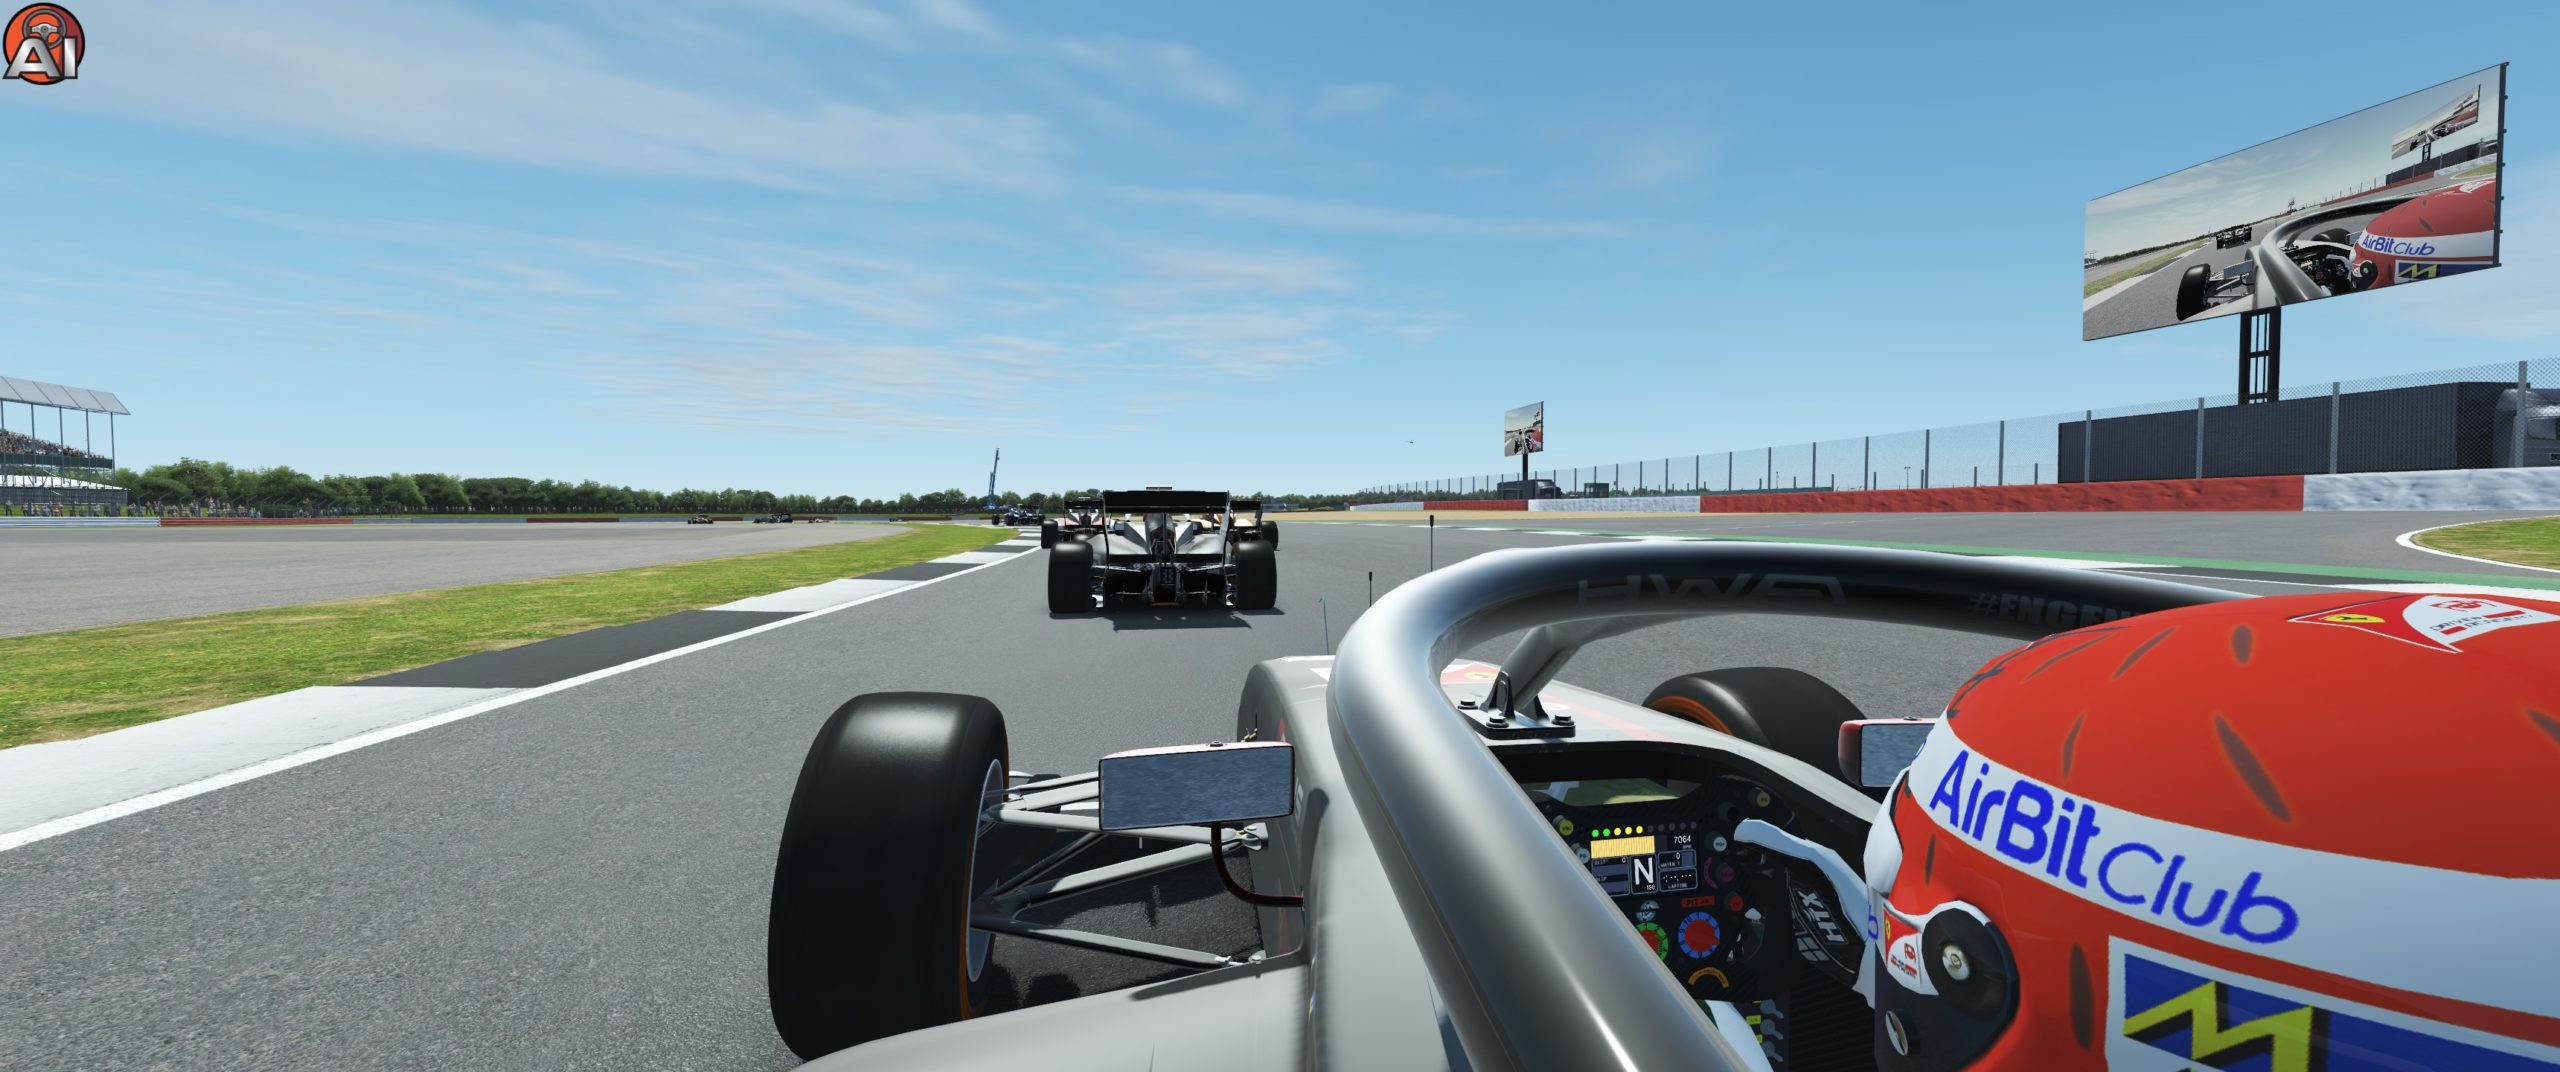 20200629155659_1-scaled SMMG Formula 3 2020 1.0 for rFactor 2 – Released